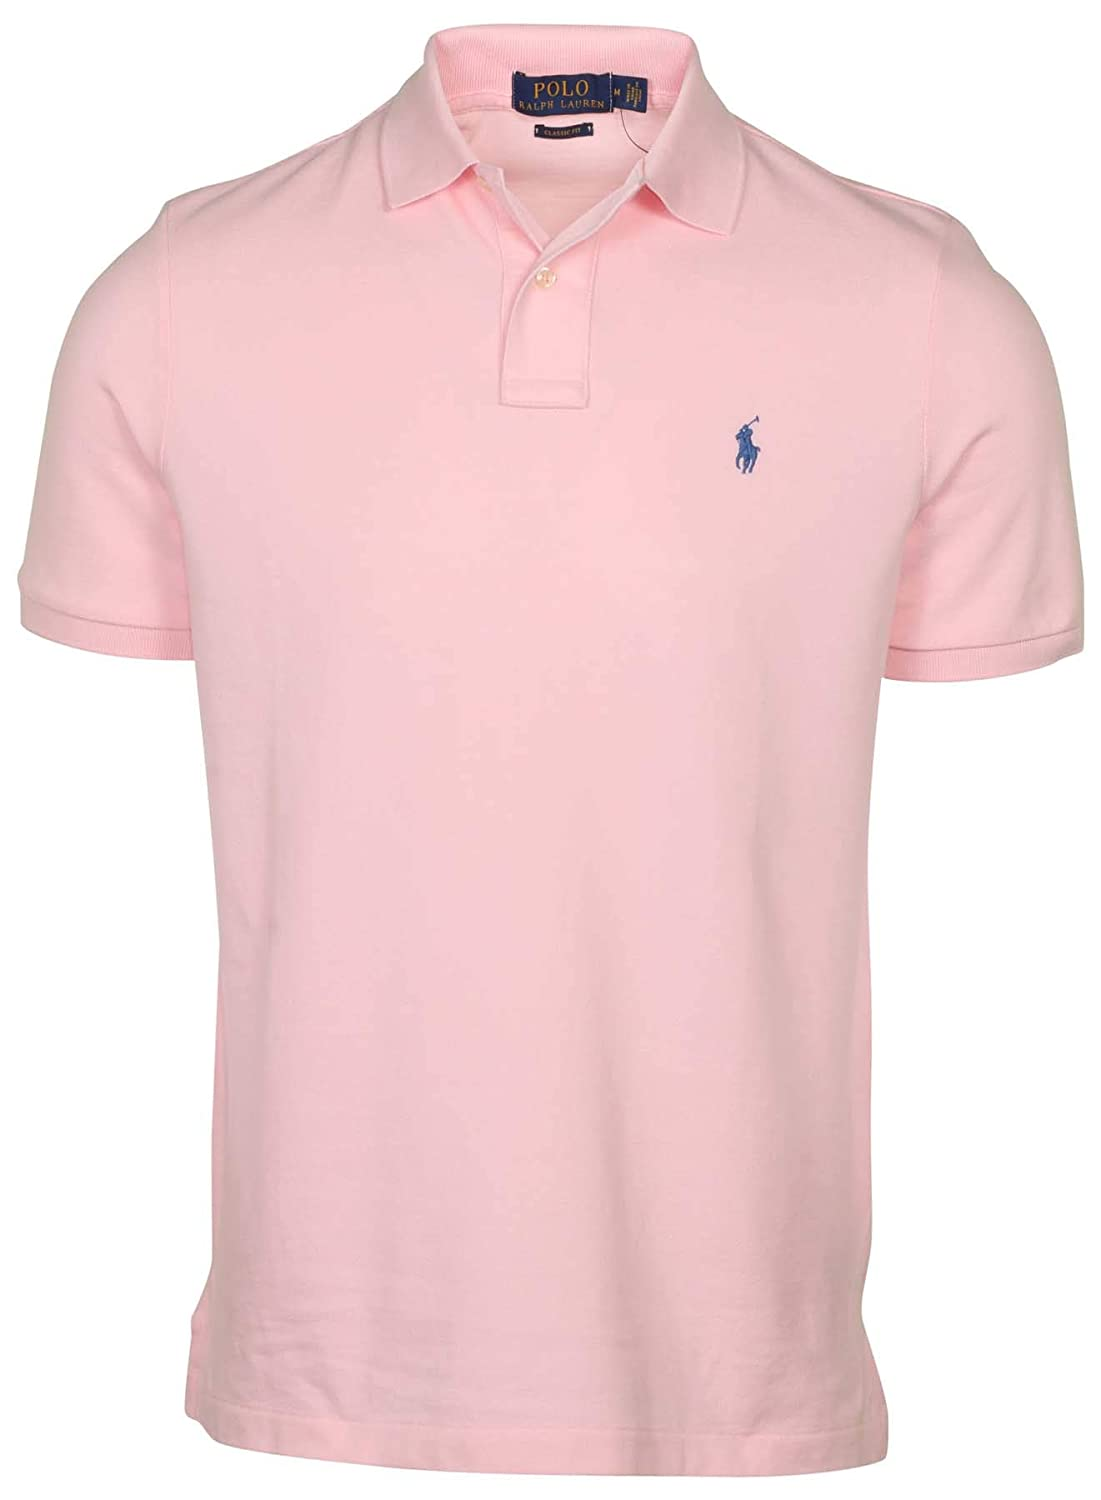 NWT Ralph Lauren Classic Fit Peach Pink Mesh Polo Shirt//Green Pony